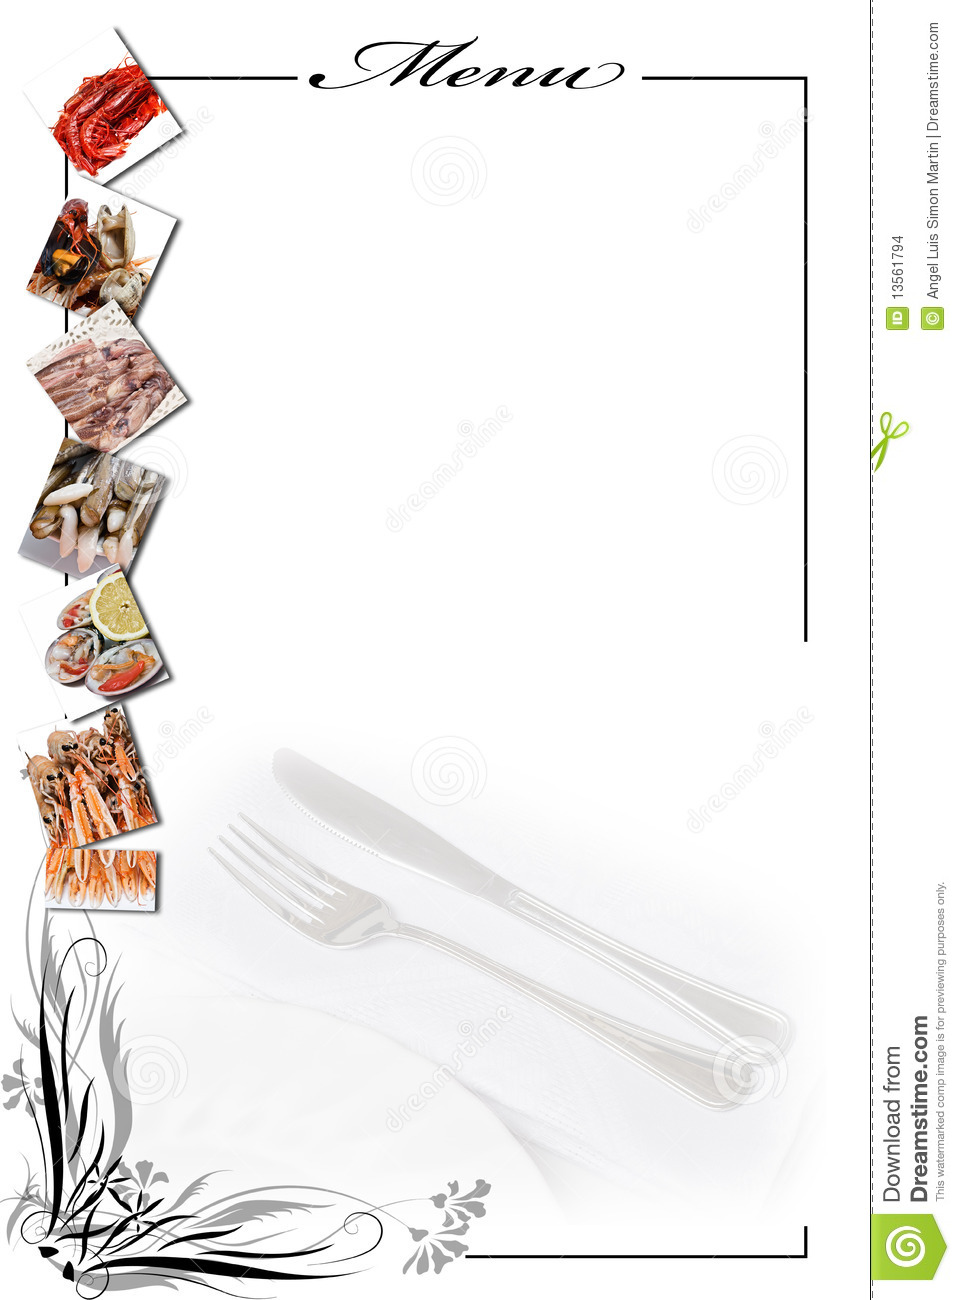 More similar stock images of ` Menu card for seafood in white. `